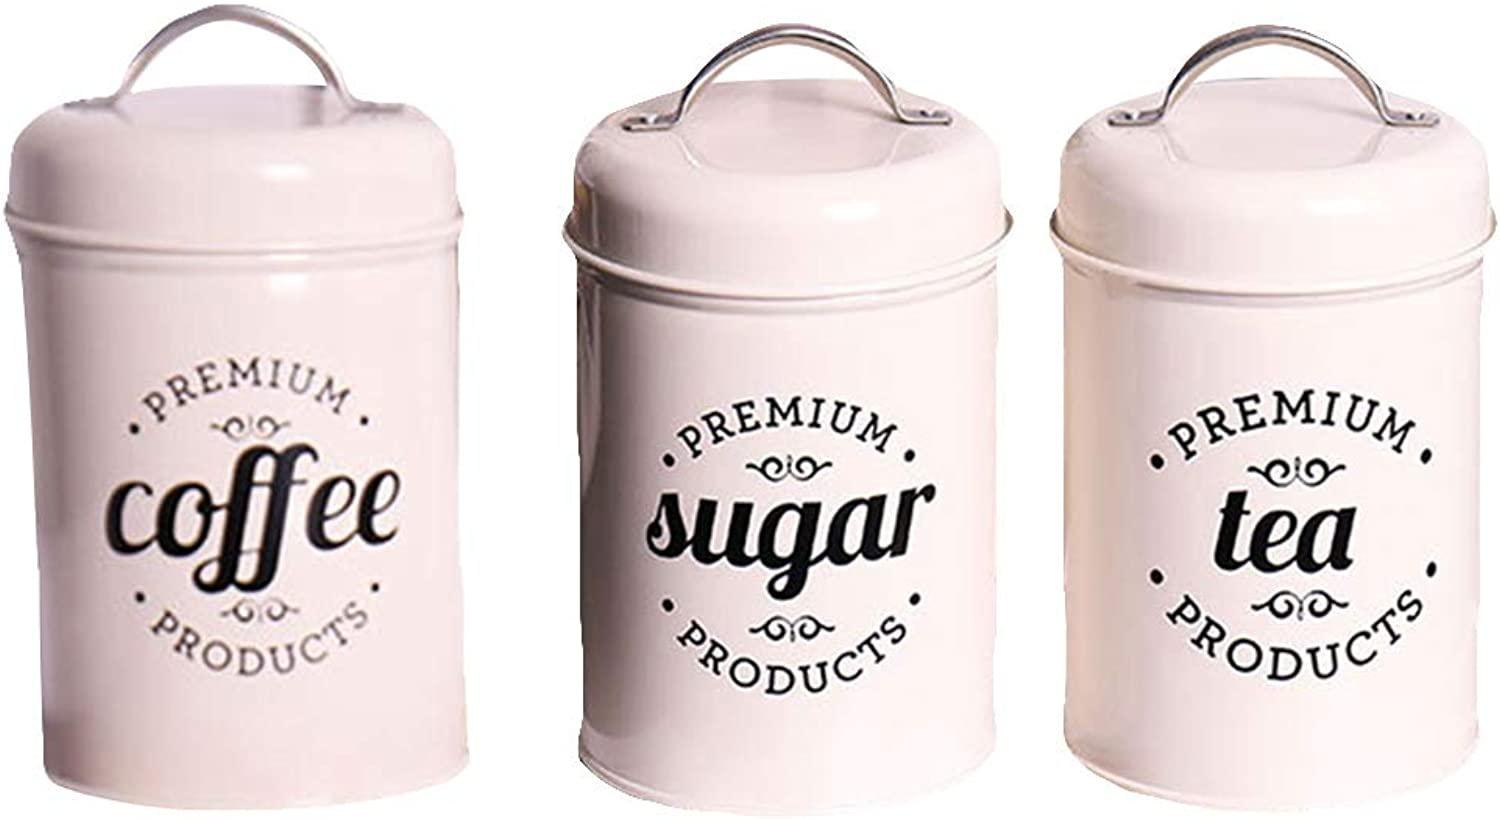 Super1798 3Pcs Set Household Tea Coffee Sugar Spice Candy Storage Canister Kitchen Jar Pot with Lid